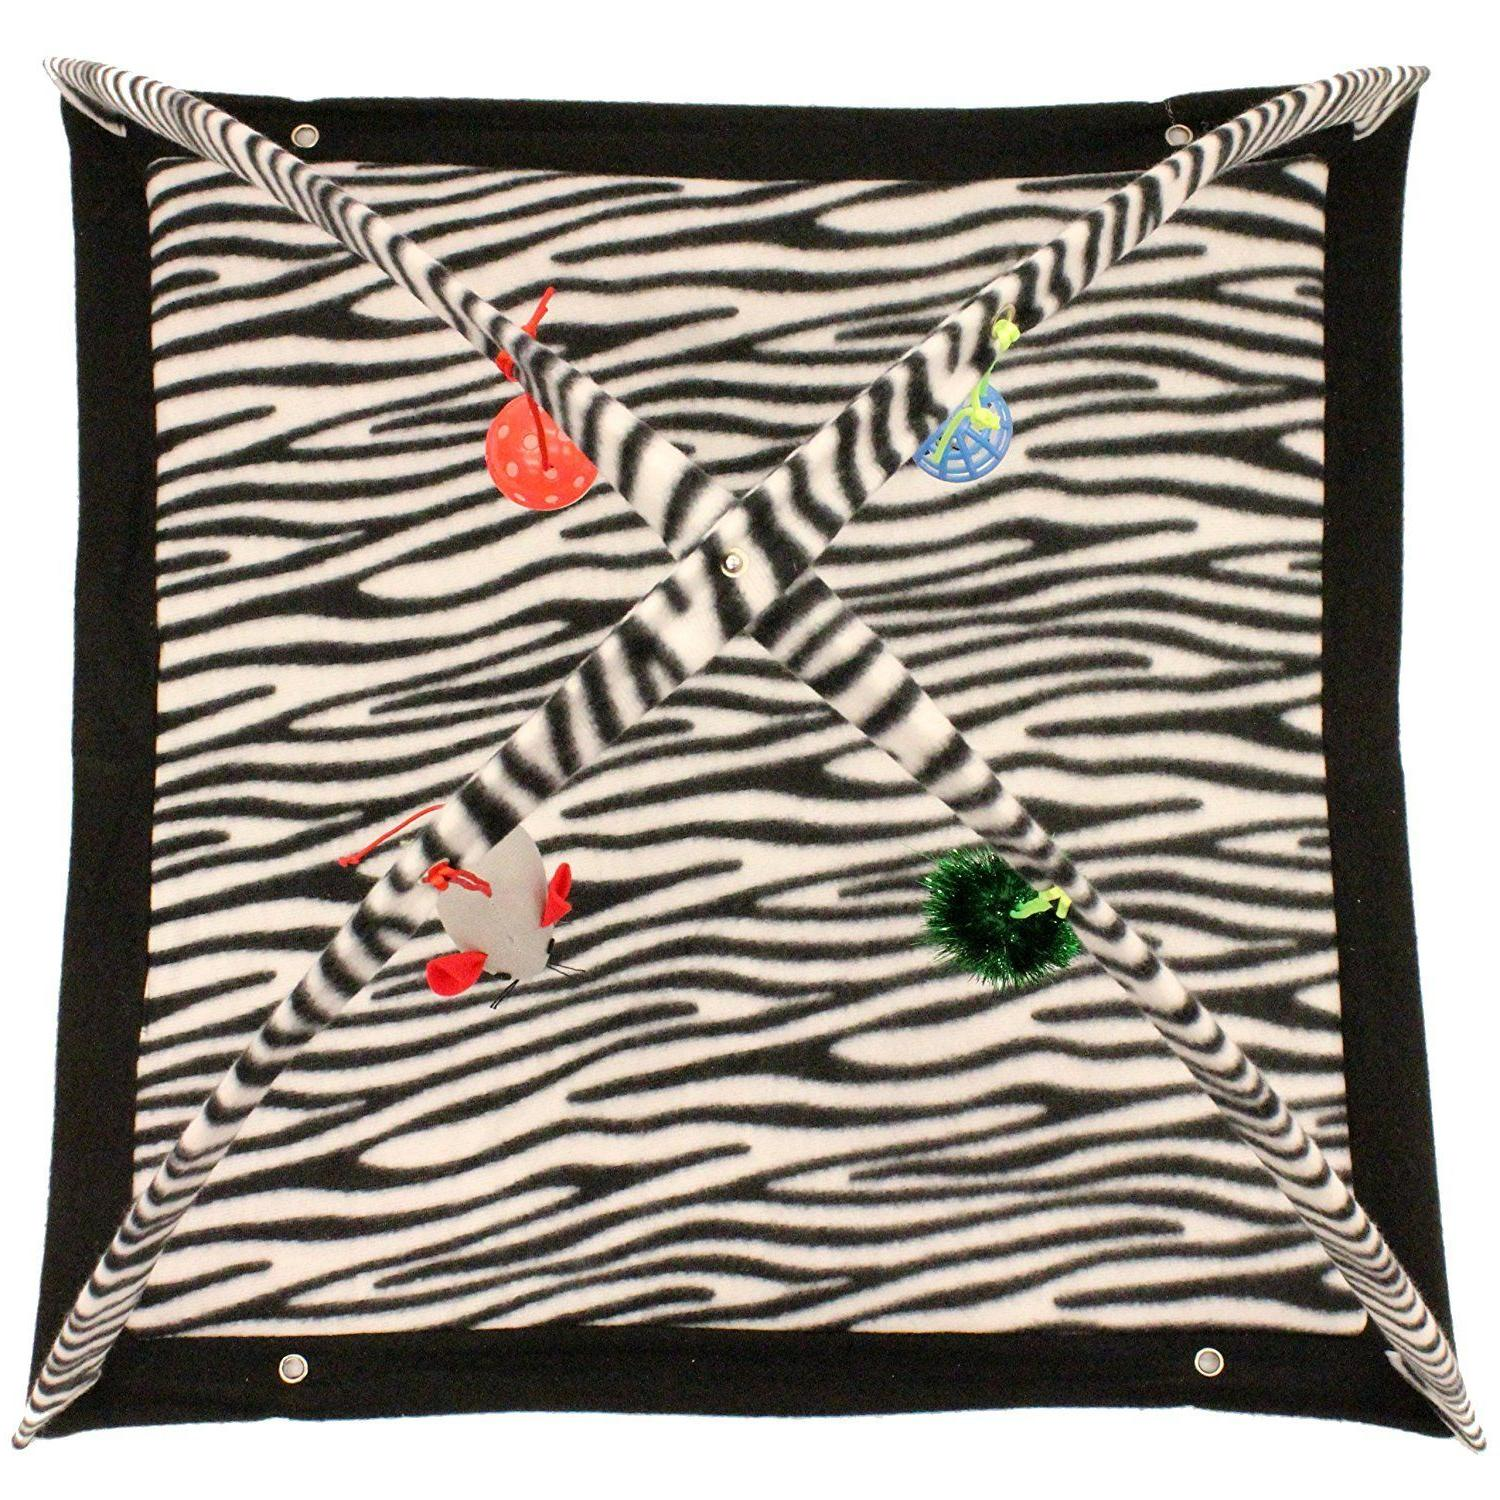 Zebra Tent with Pet Kitty NEW